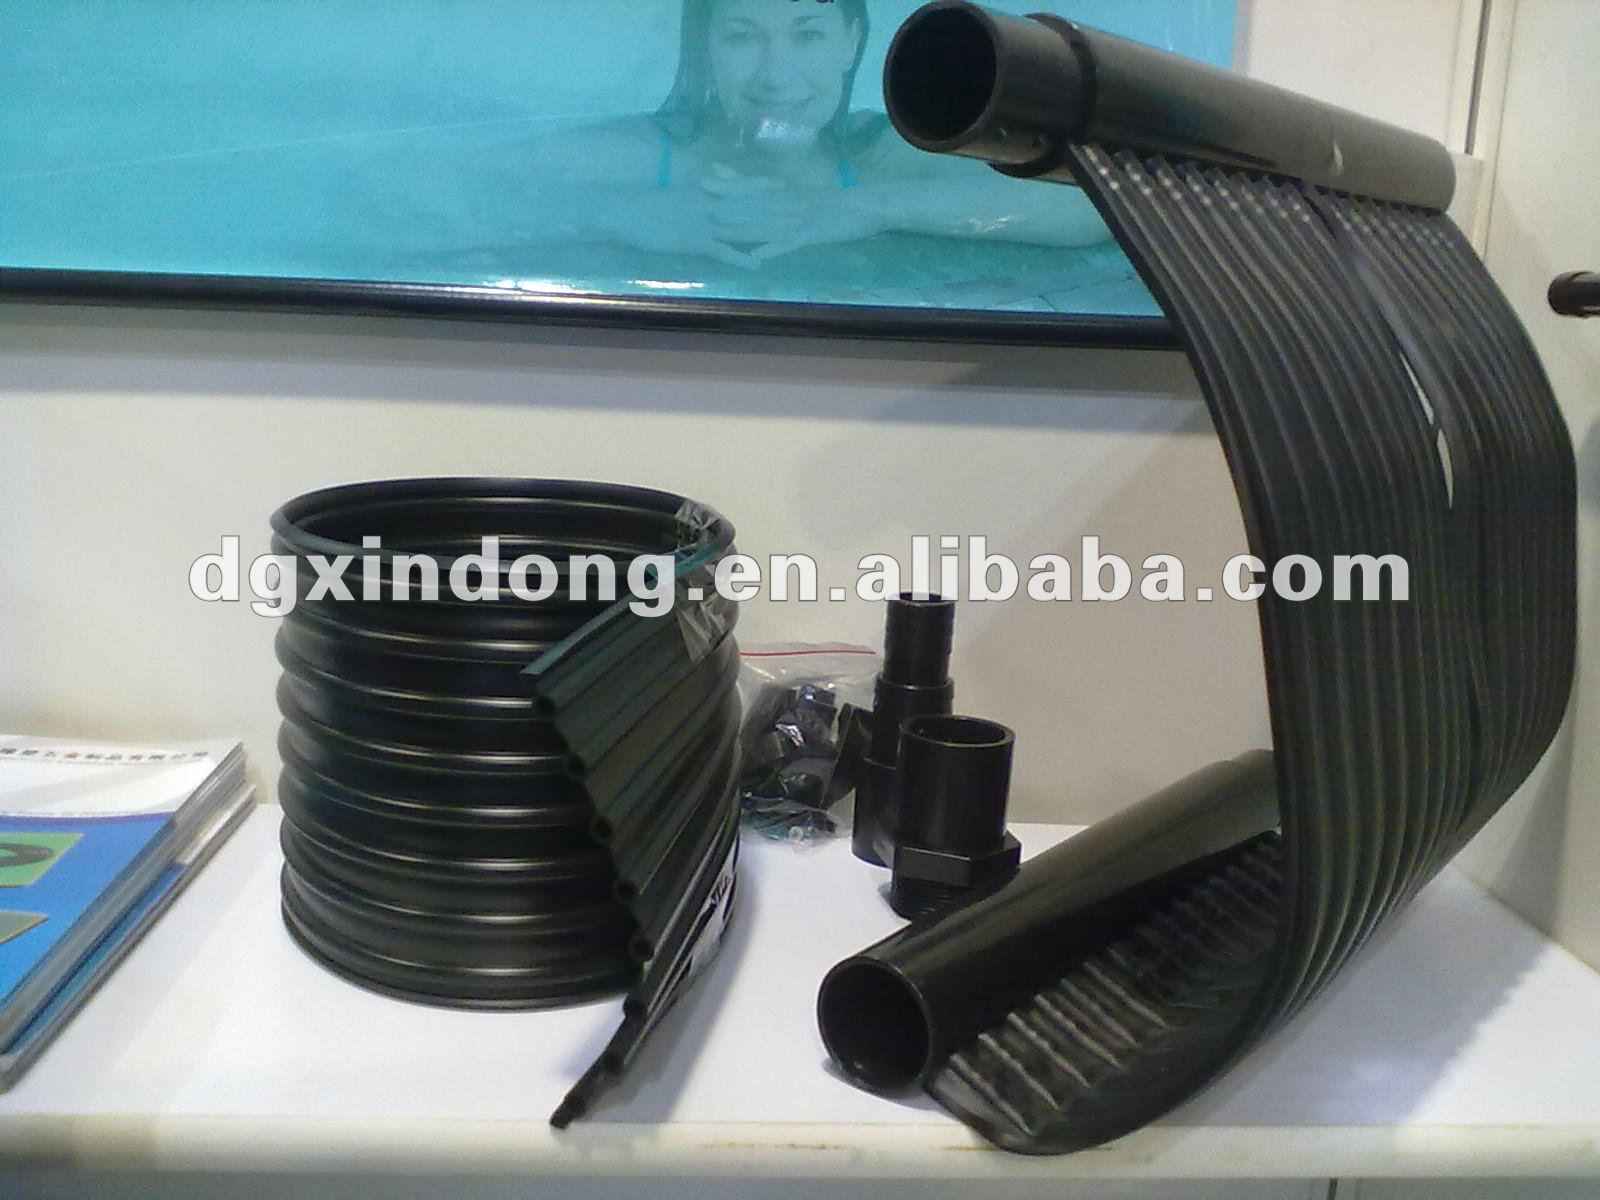 Black Rubber Diy Swimming Pool Solar Water Heater Buy Water Heater Solar Water Heater Swiming Water Heater Product On Alibaba Com